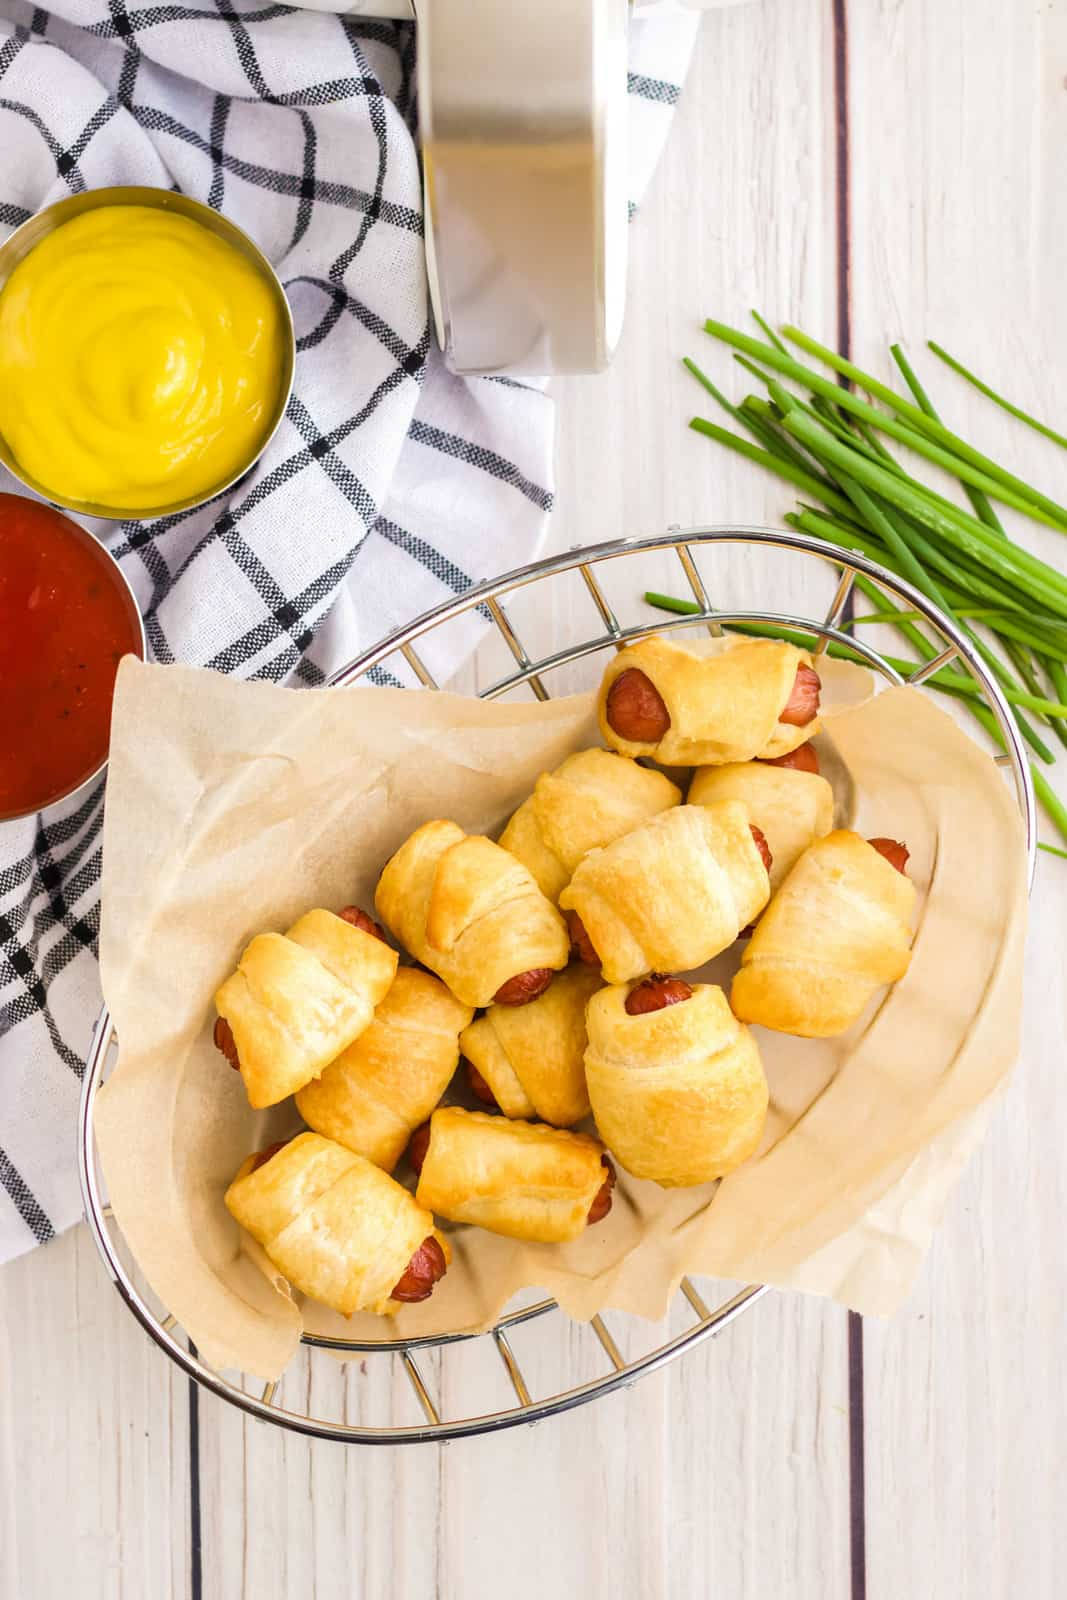 Overhead of Pigs in a Blanket in basket